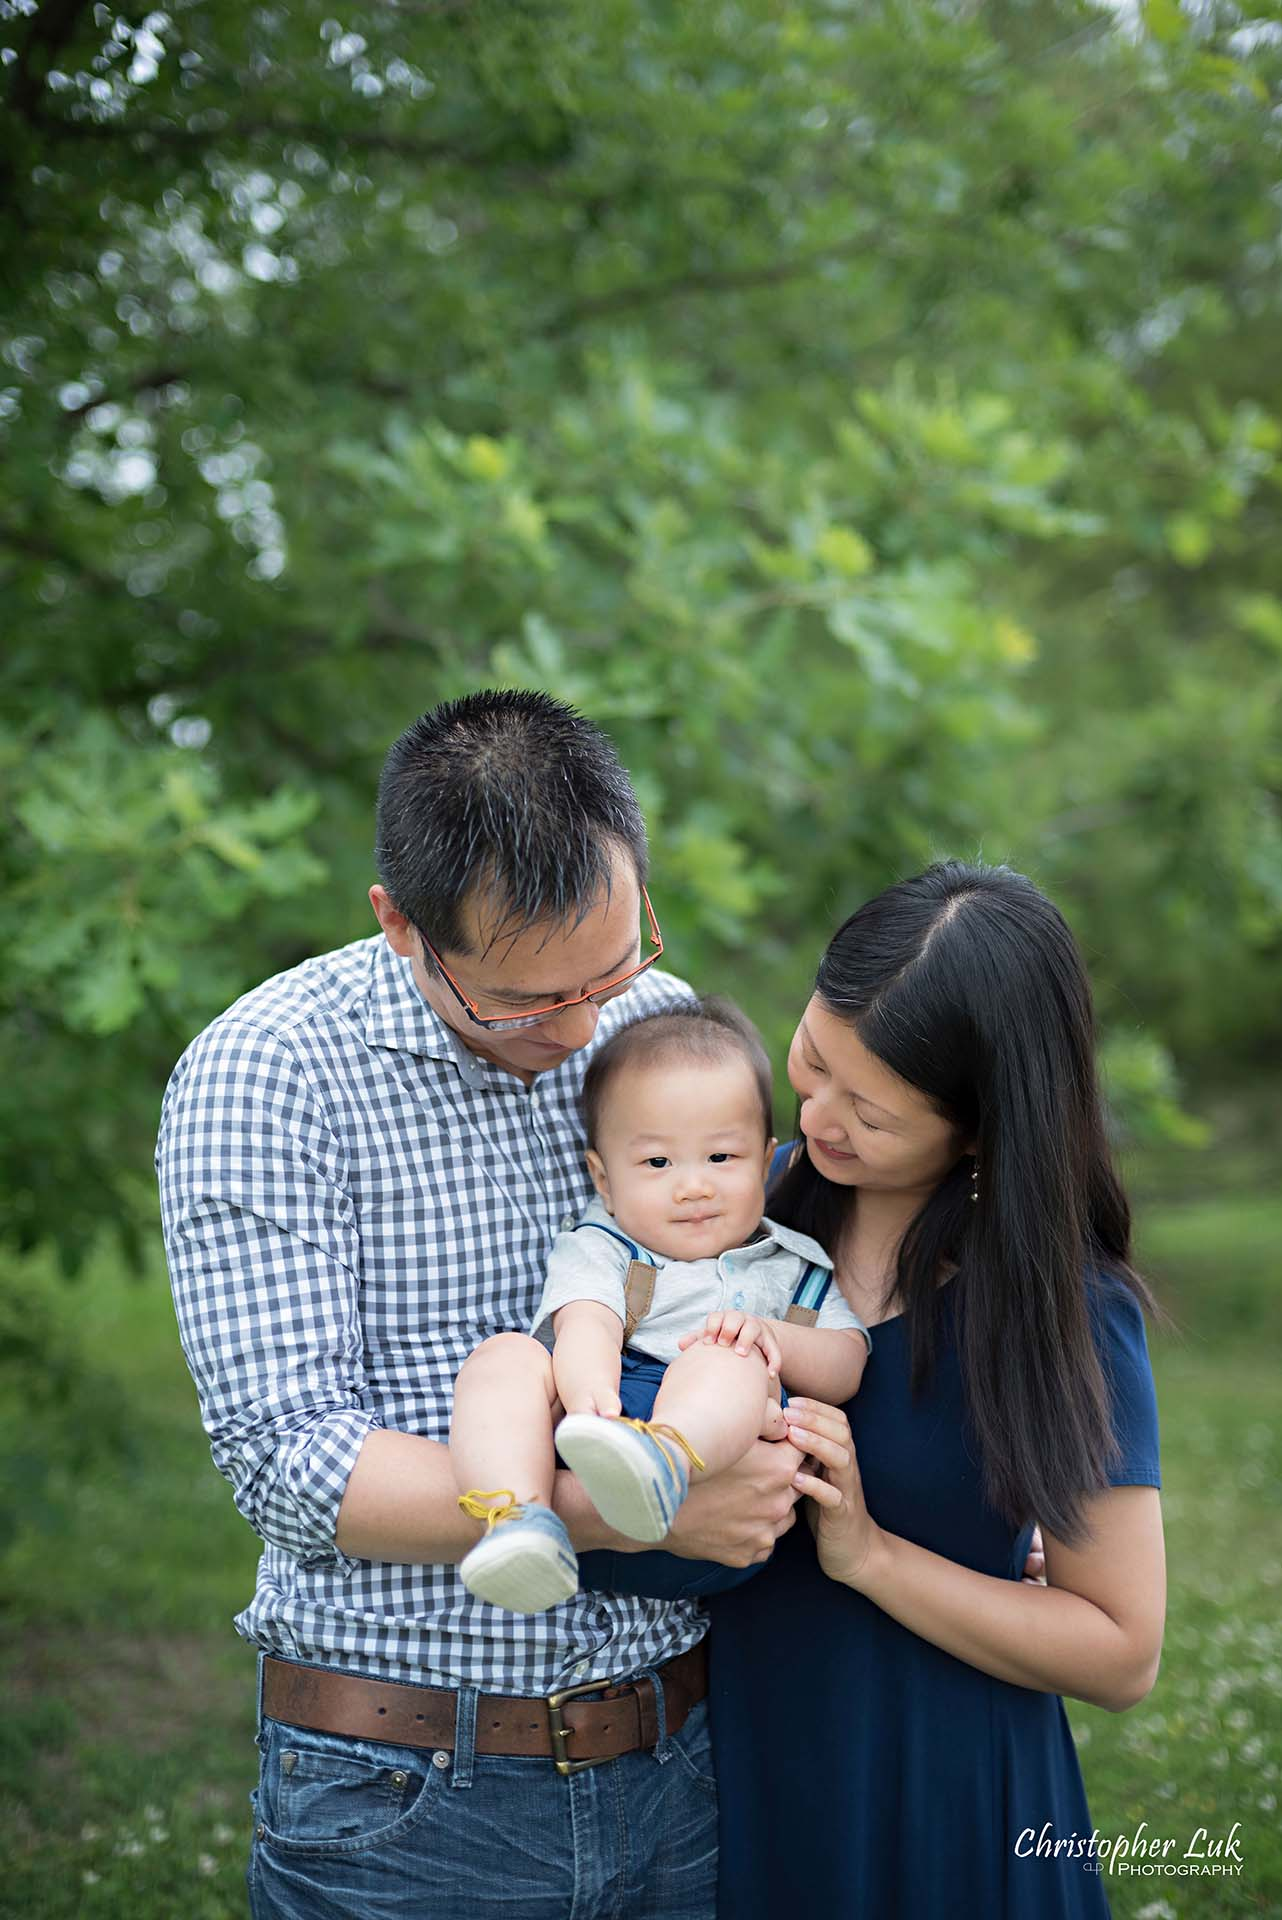 Christopher Luk Family Baby Wedding Photographer Richmond Hill Markham Toronto - Candid Natural Photojournalistic Mother Father Parents Baby Smile Cute Adorable